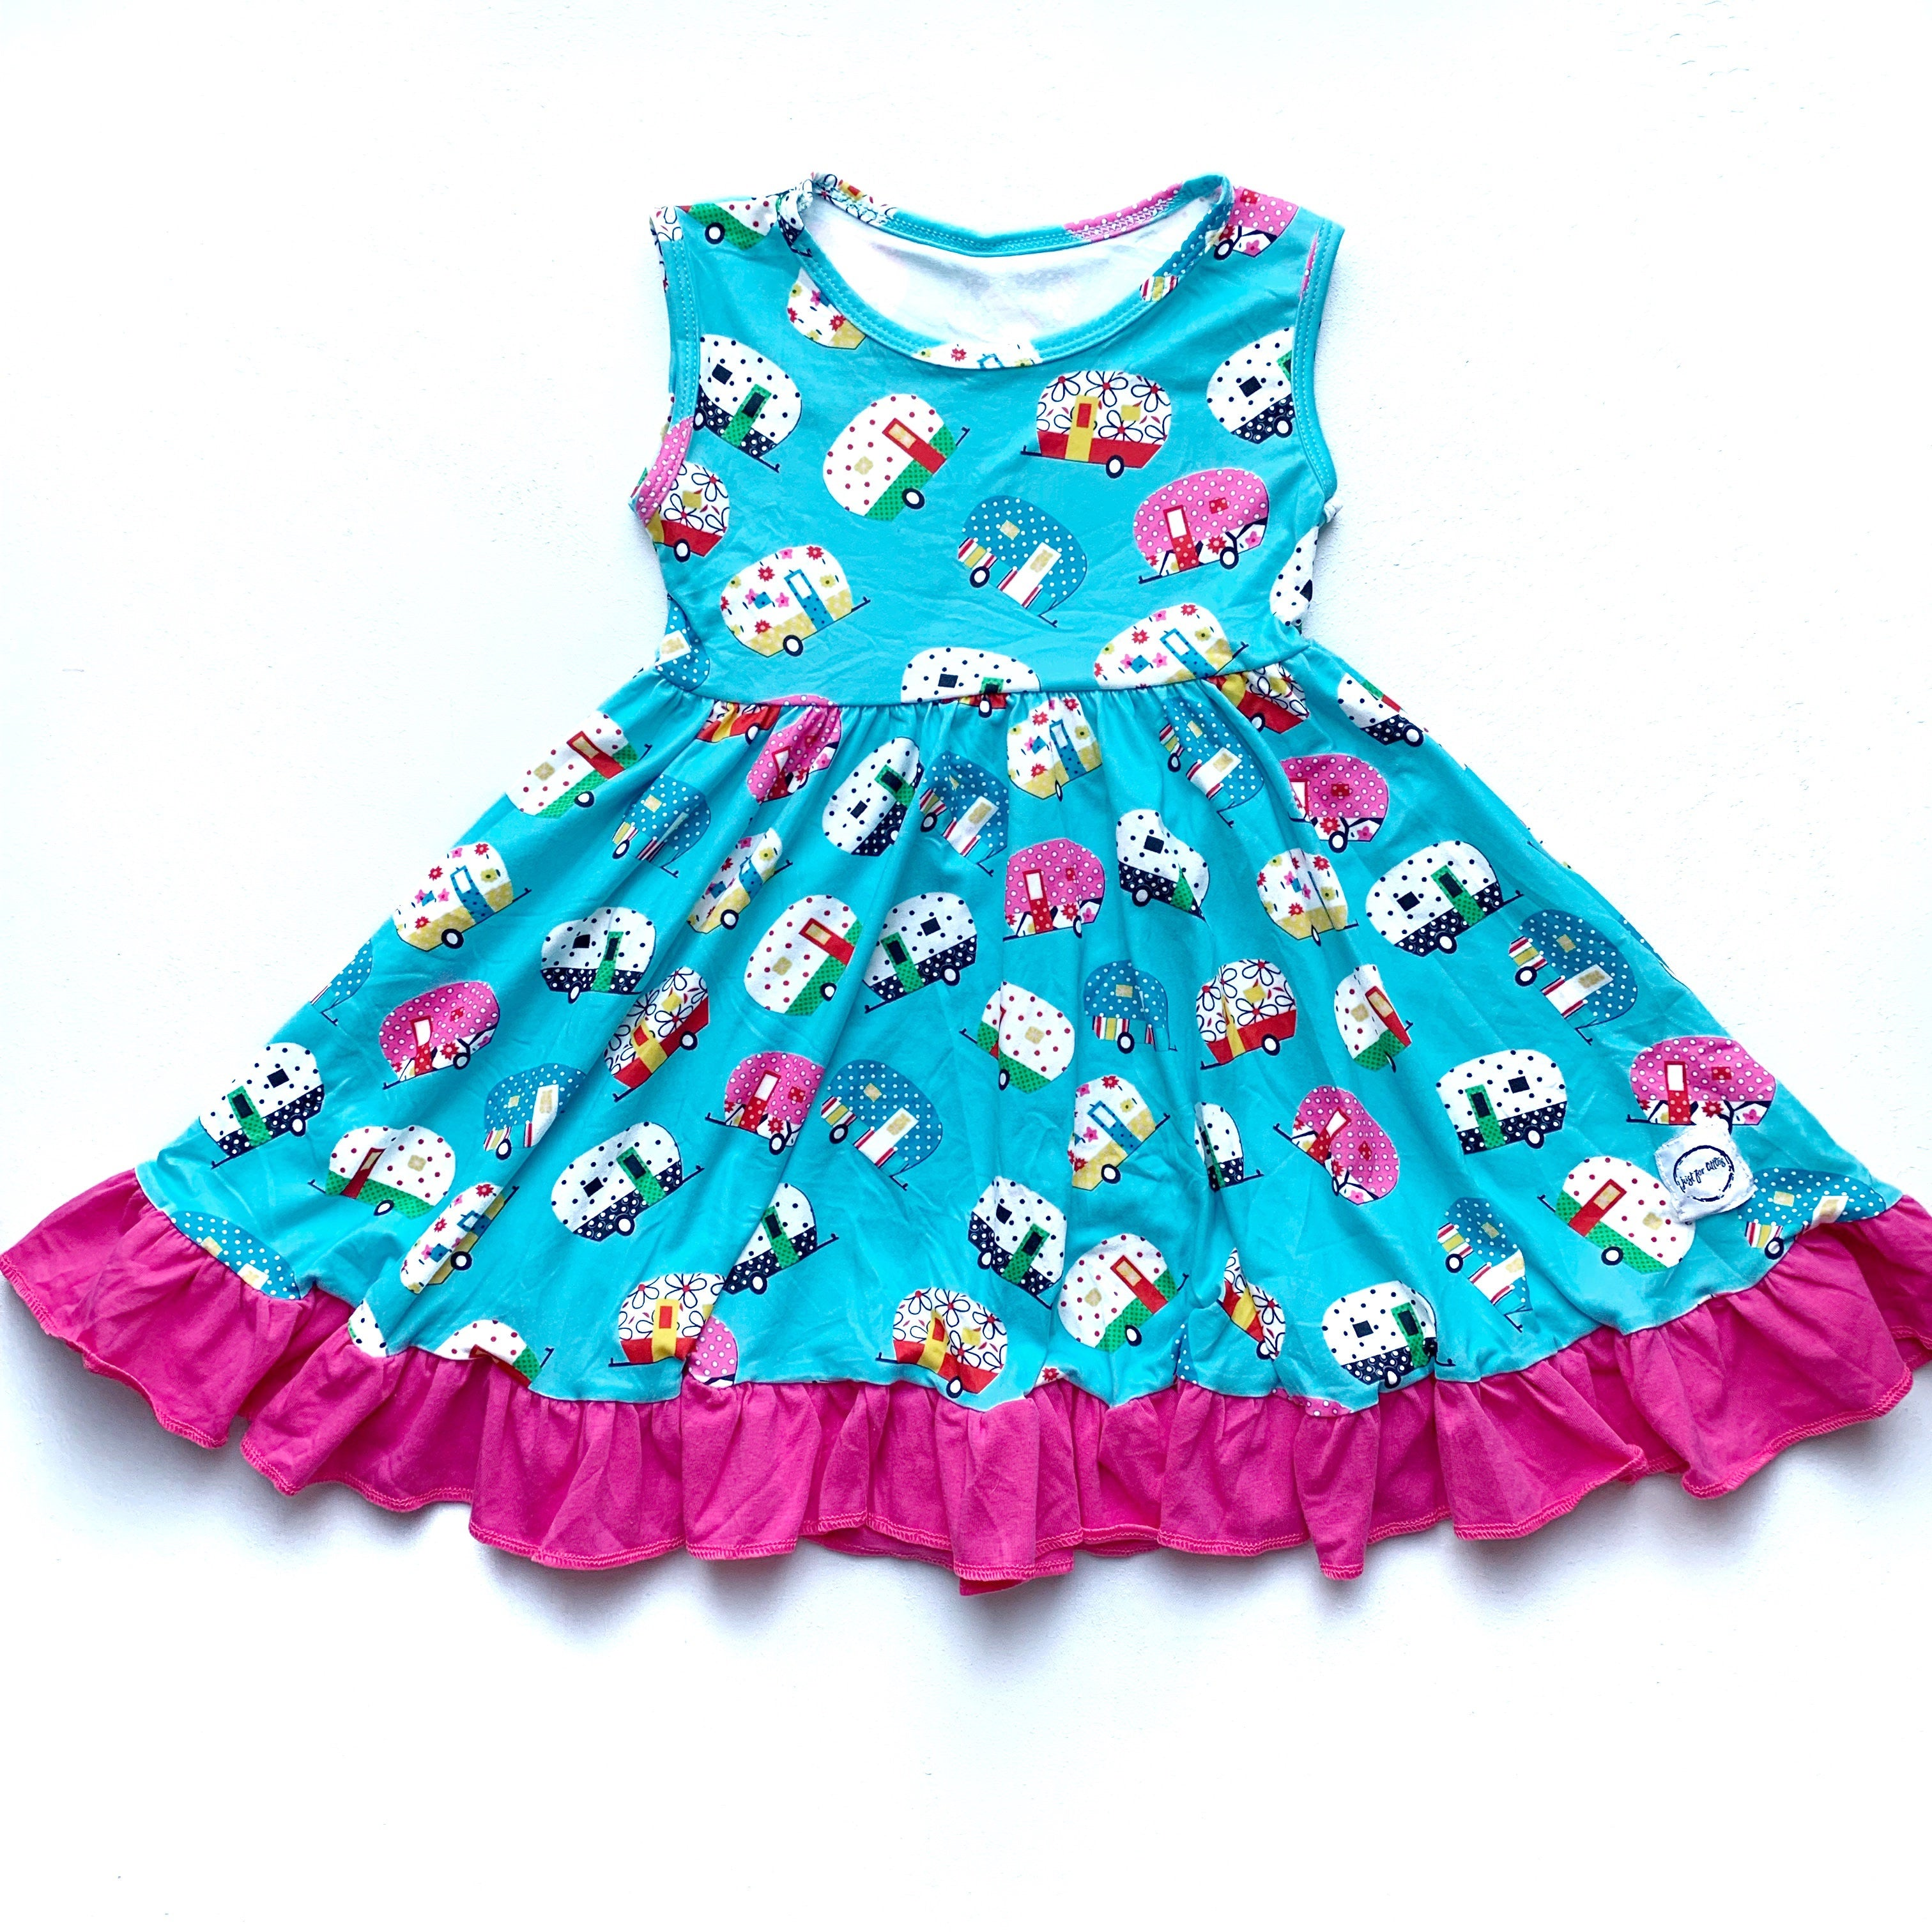 camper twirl dress